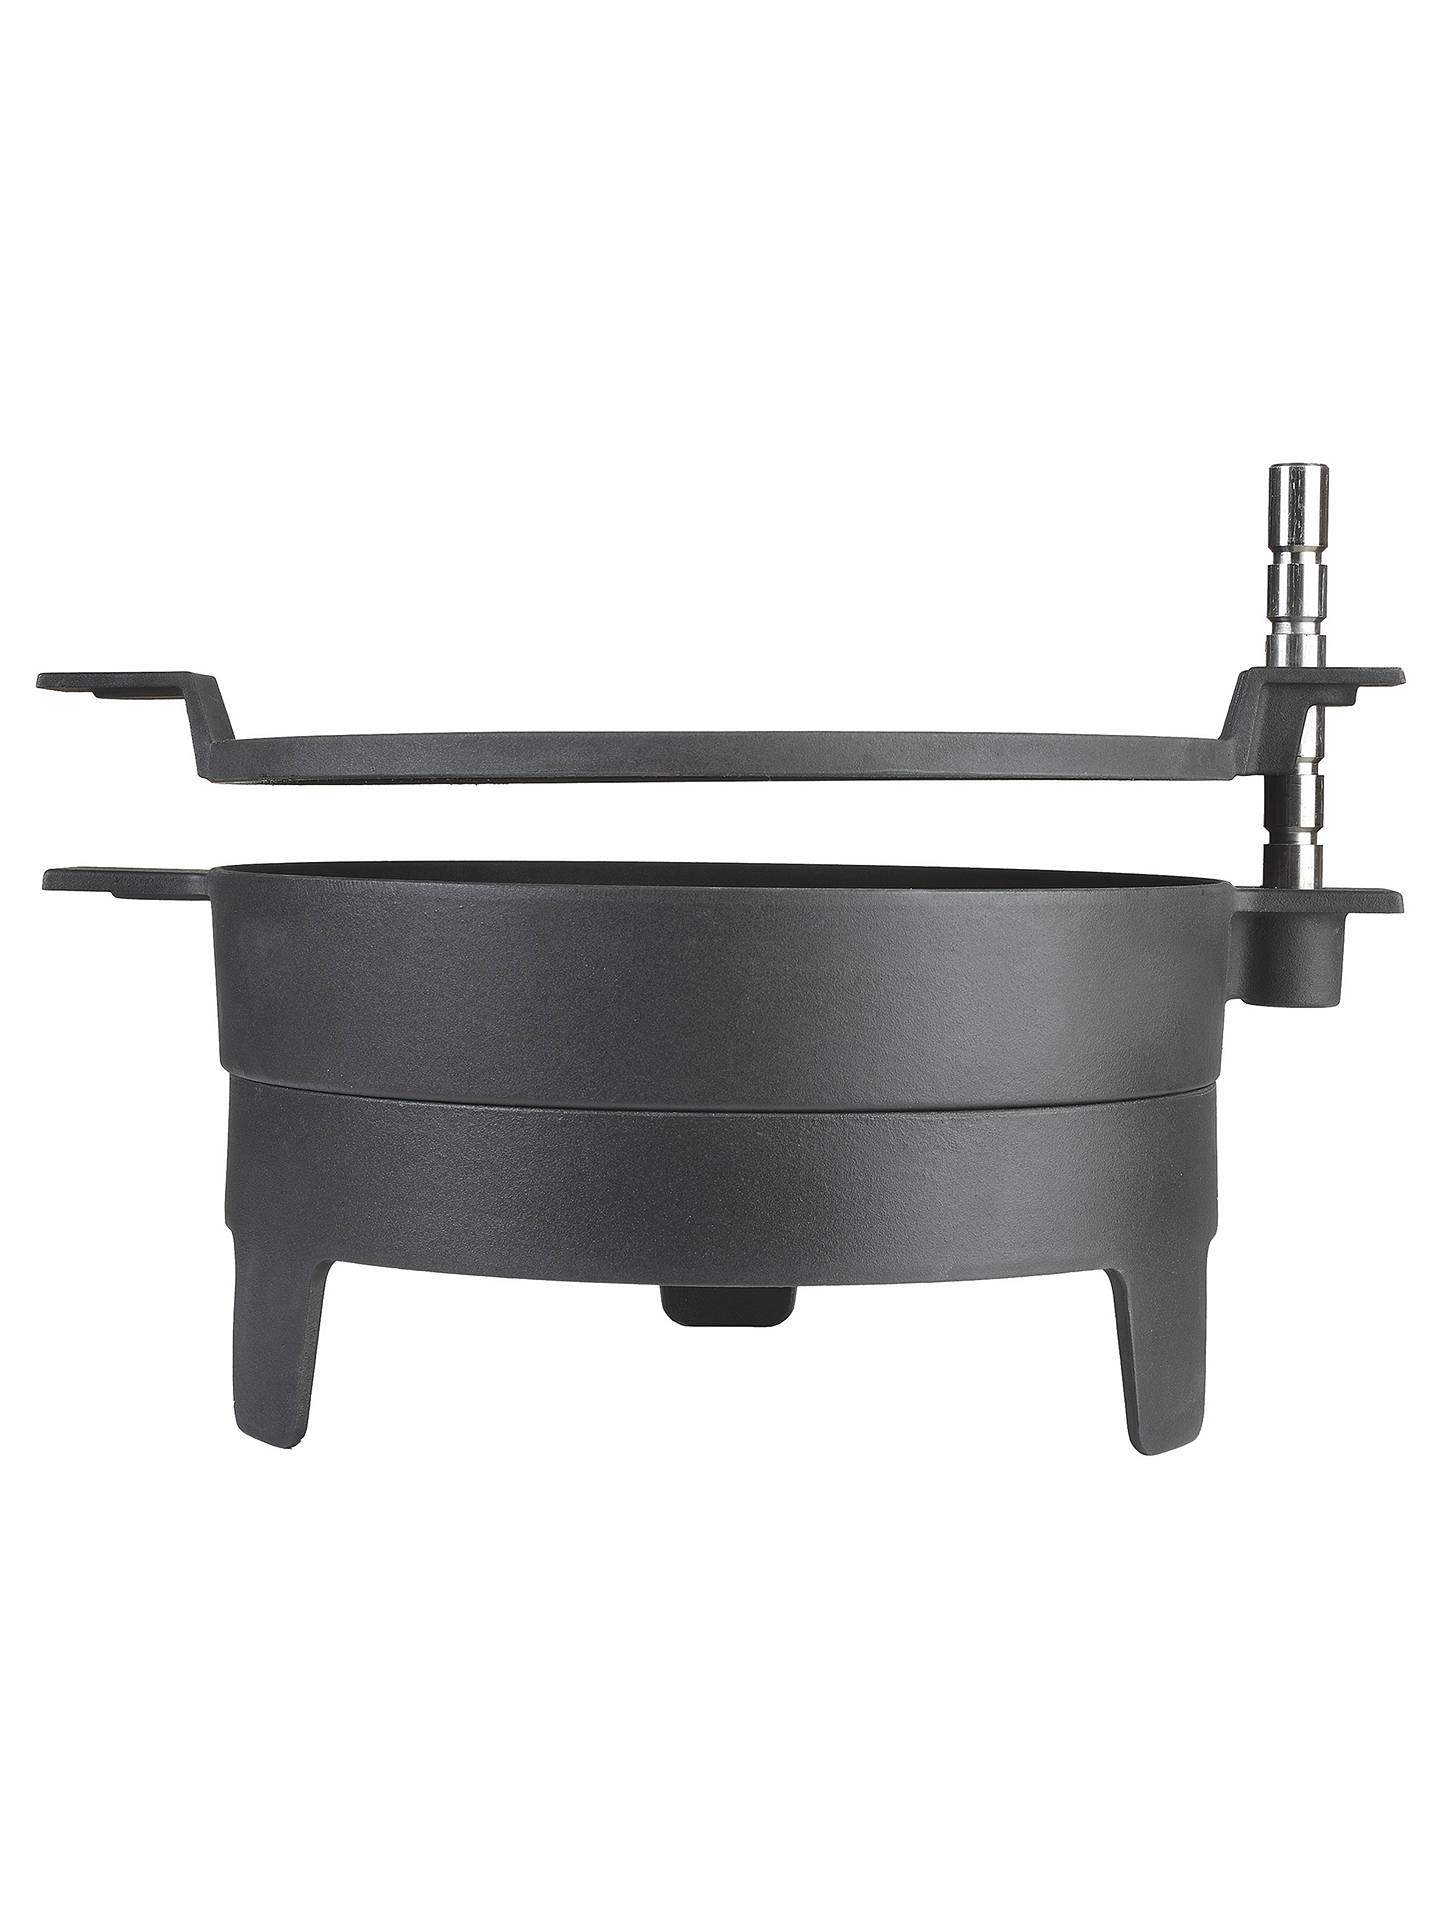 Buy Morsø Tabletop Charcoal Grill, Black Online at johnlewis.com